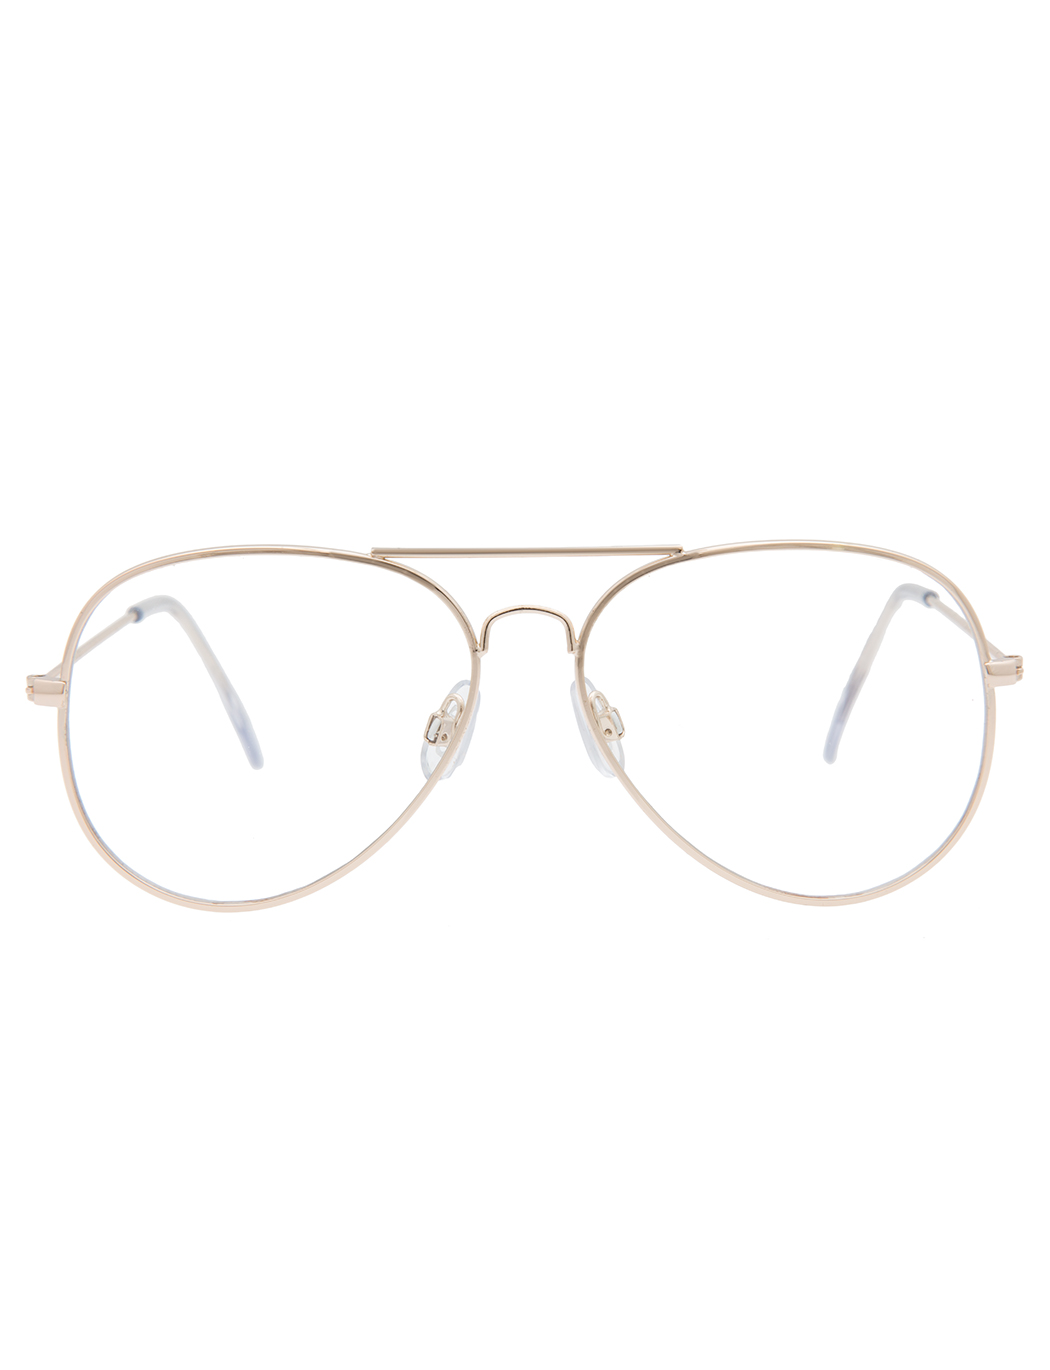 69f91d5ea83d Gold Rimmed Glasses | Women's Plus Size Accessories | ELOQUII